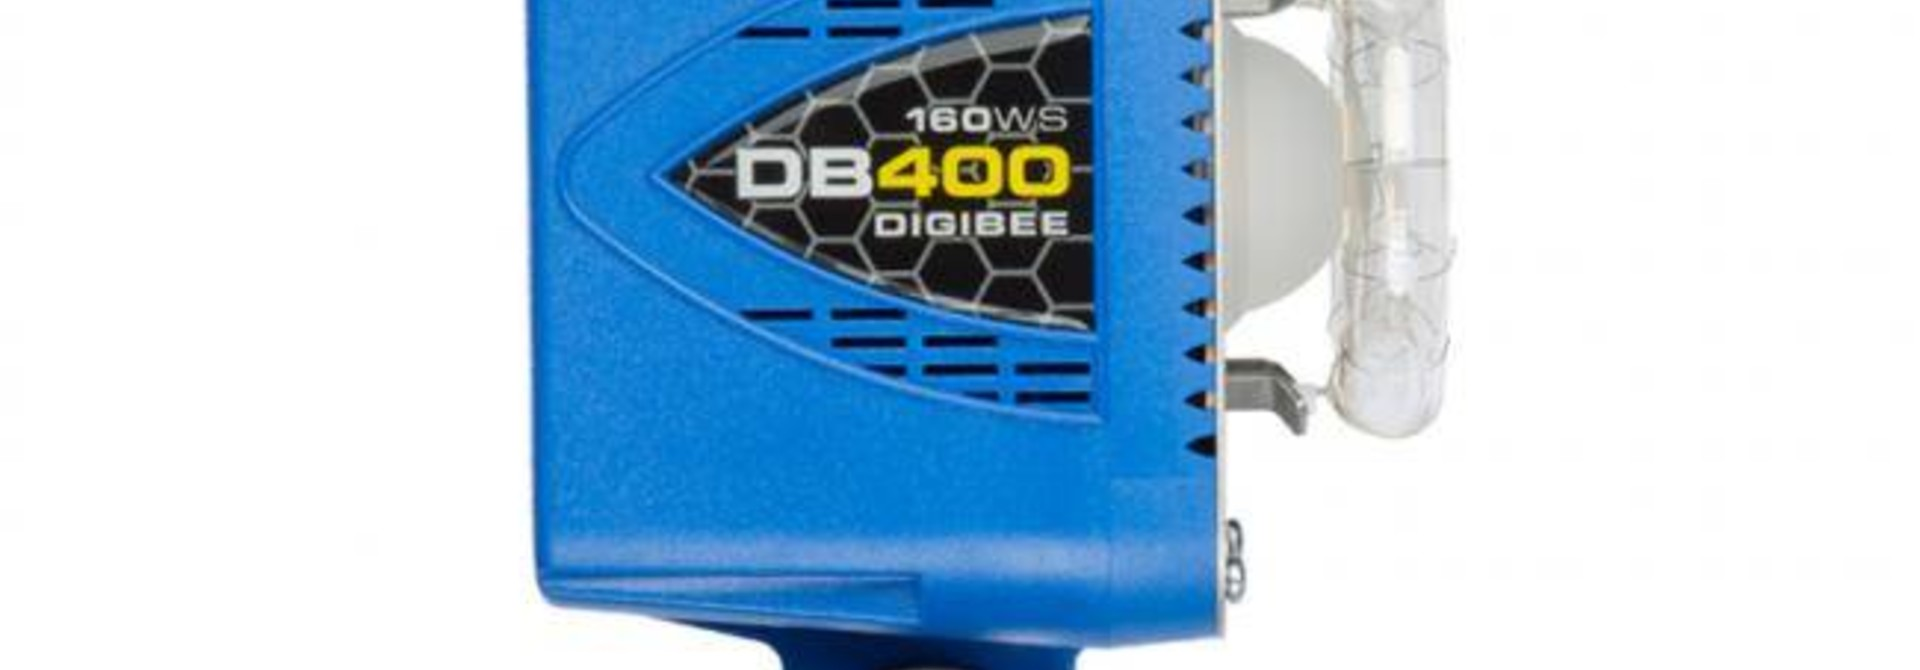 DigiBee Studioblitz - DB400